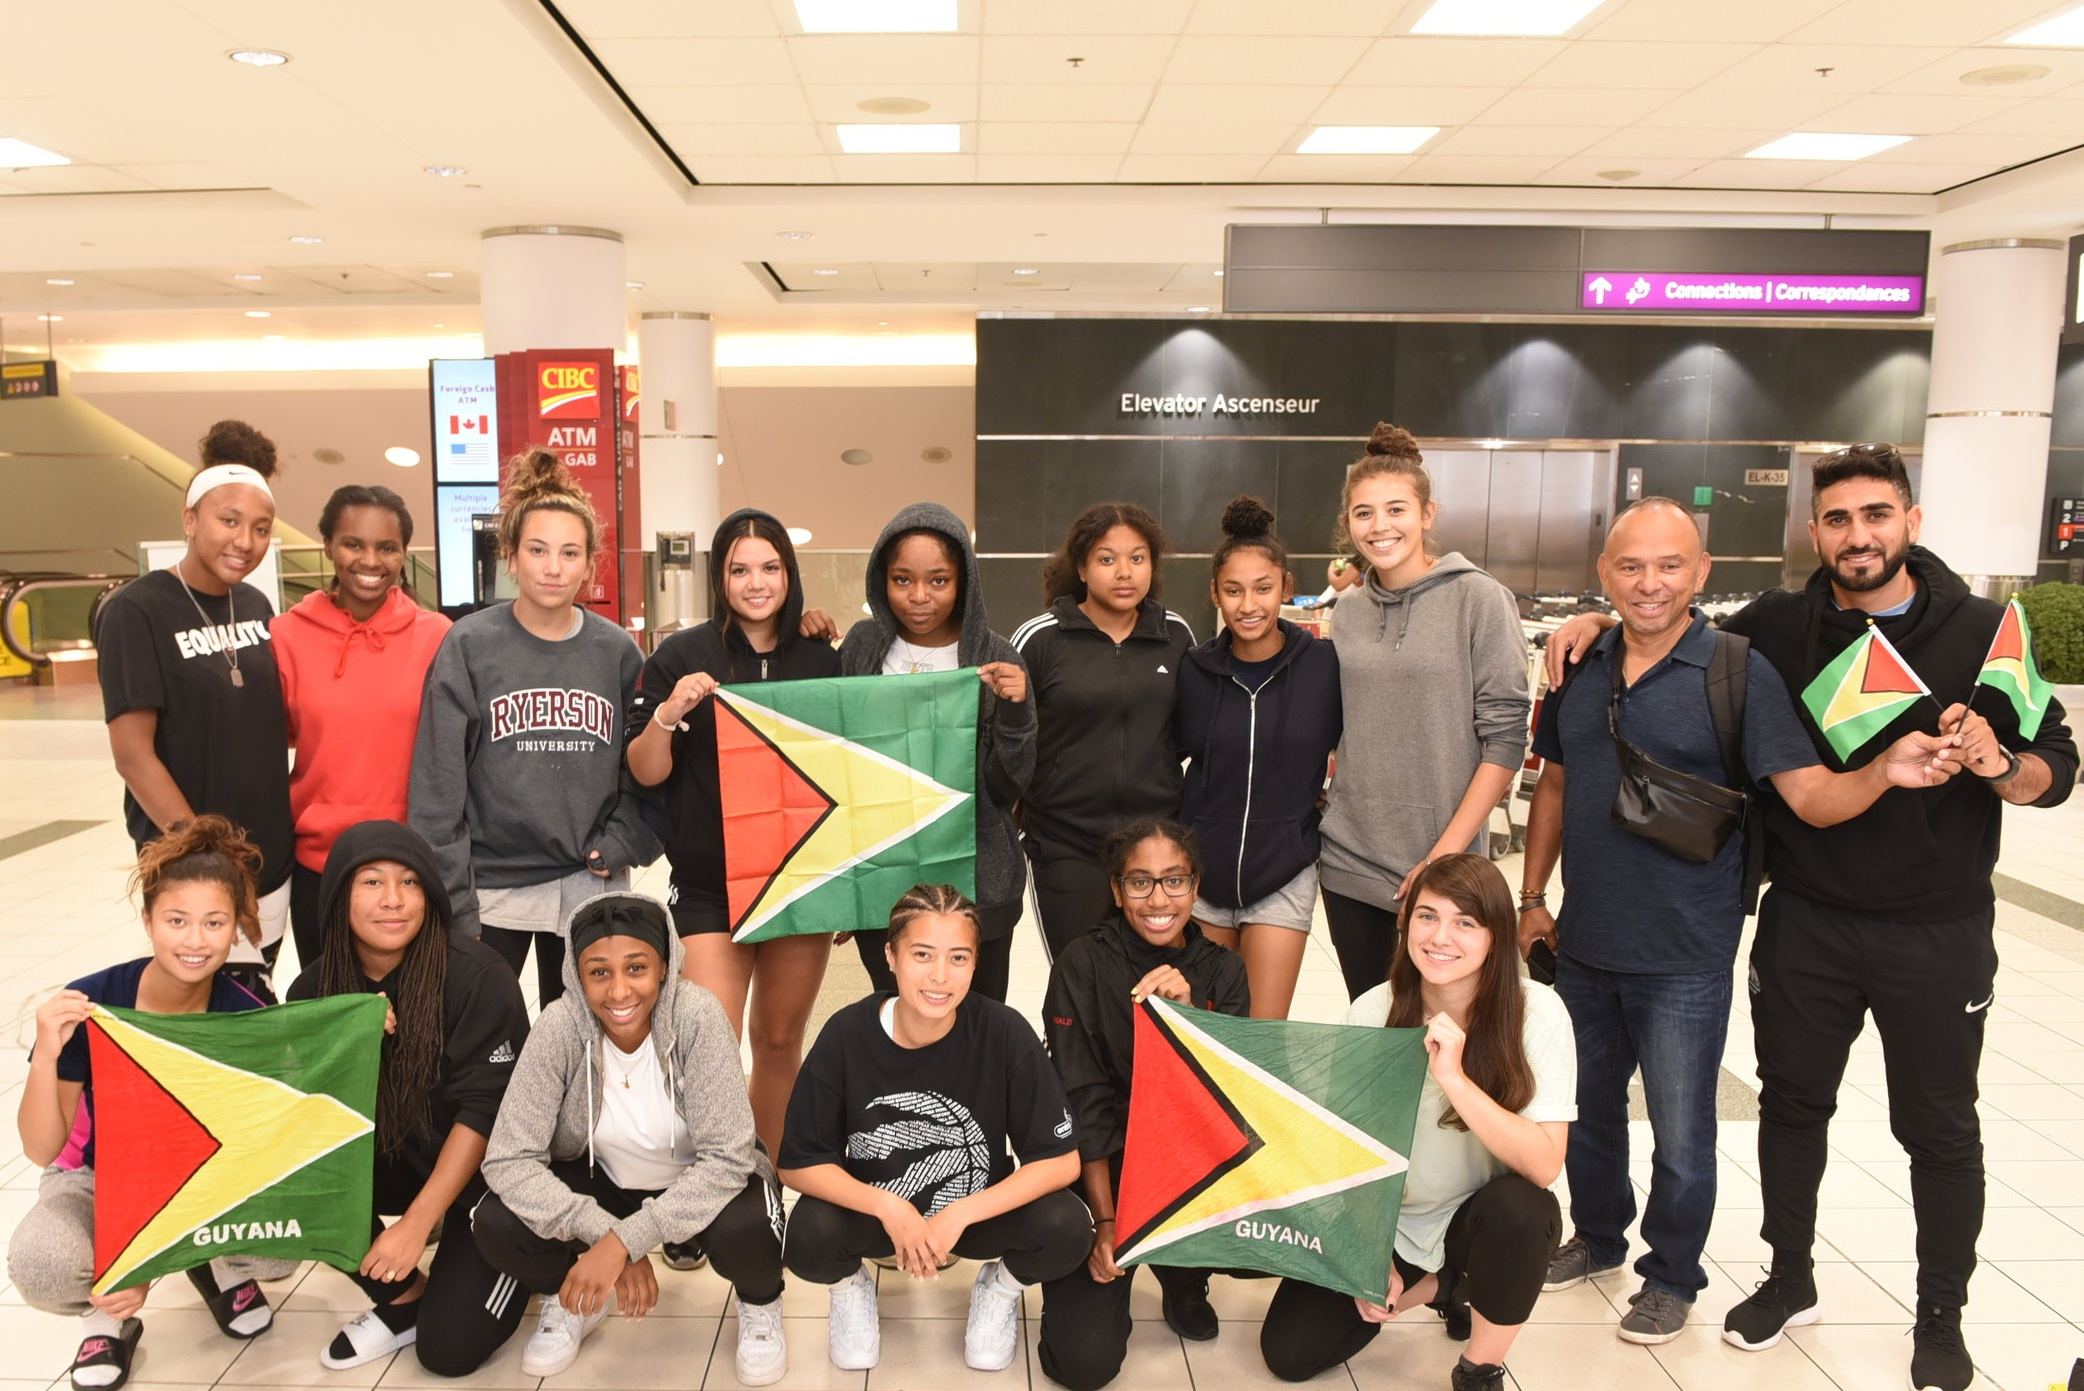 The Canadians who helped Guyana to an unbeaten record